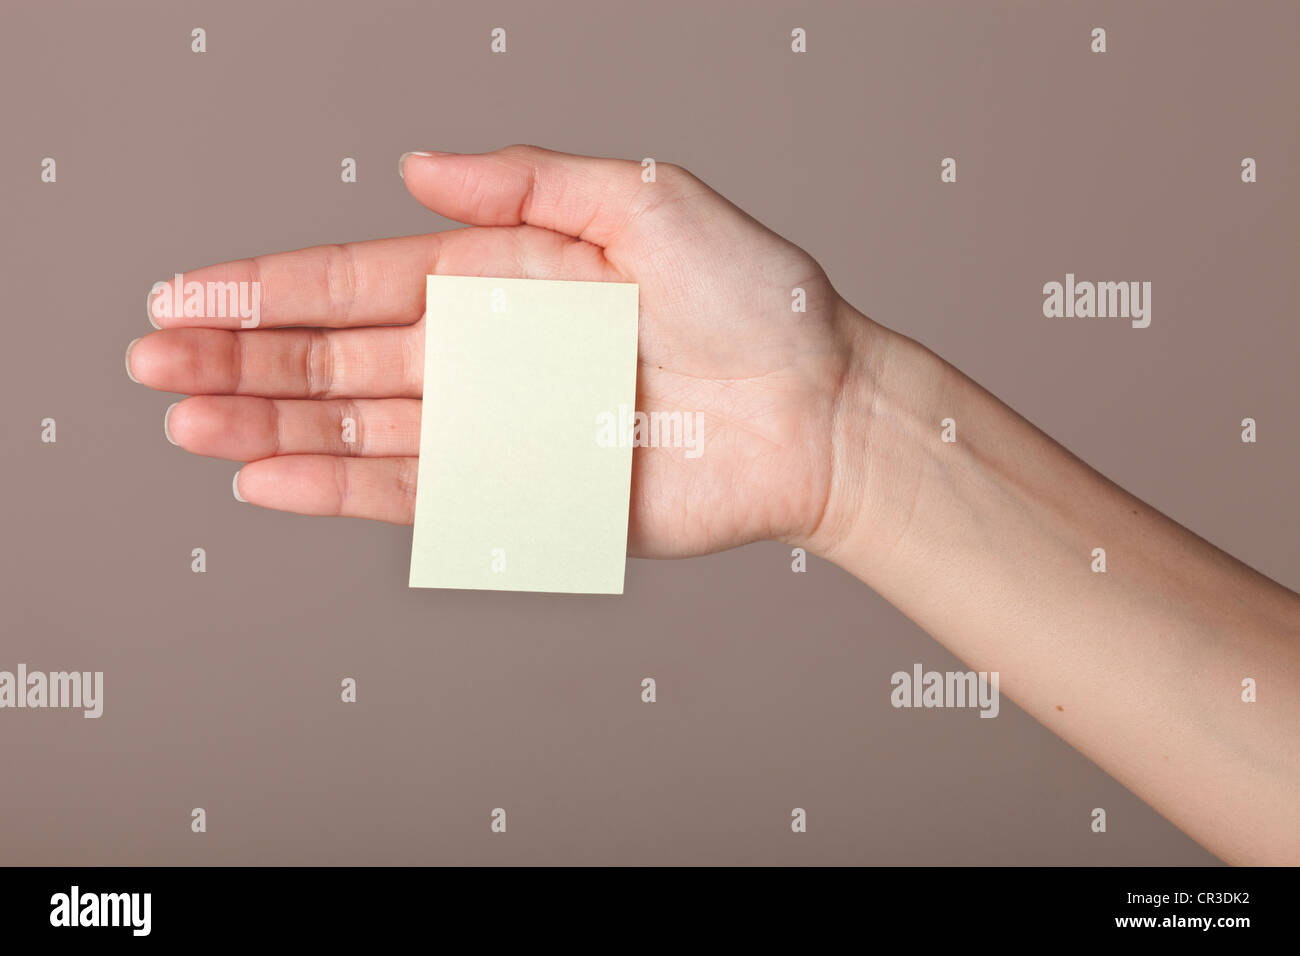 Post-It note stuck to the palm of a female hand - Stock Image